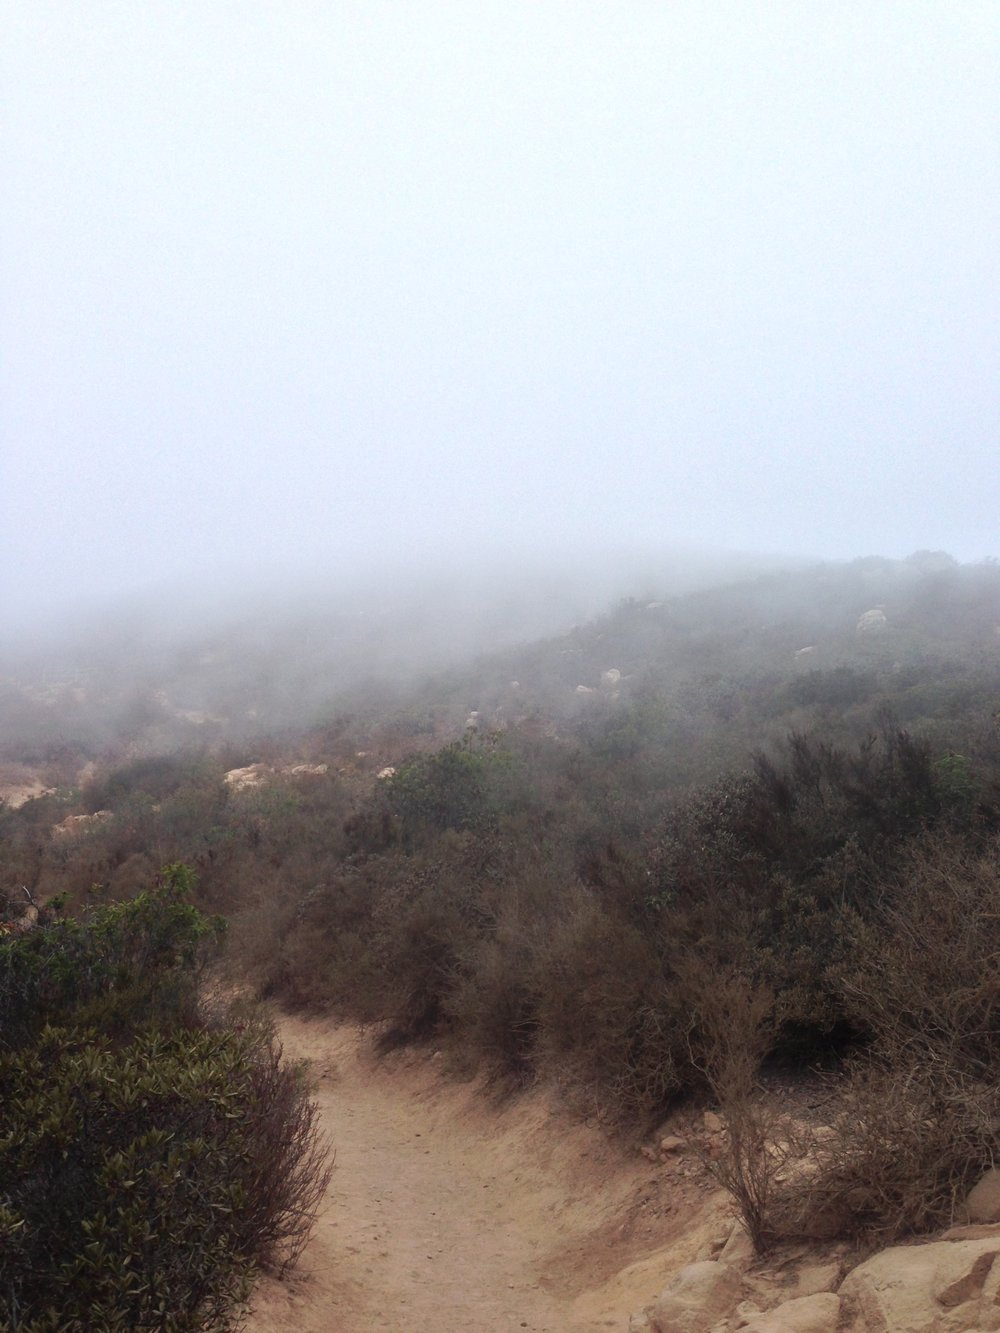 Because of its proximity to the coast, Cowles Mountain is often covered in fog during the early morning.